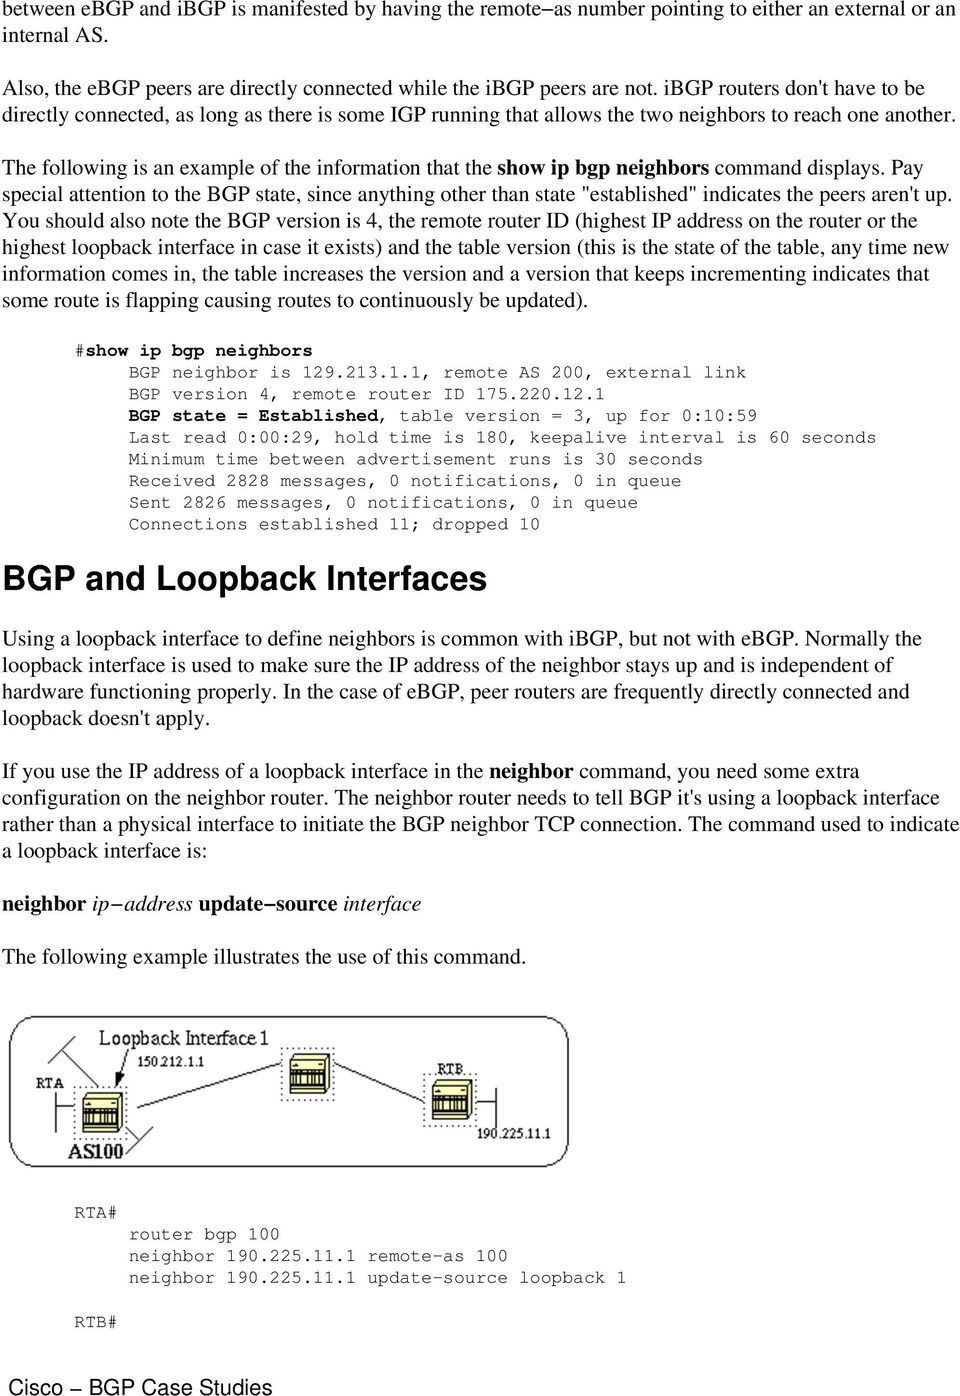 The following is an example of the information that the show ip bgp neighbors command displays.